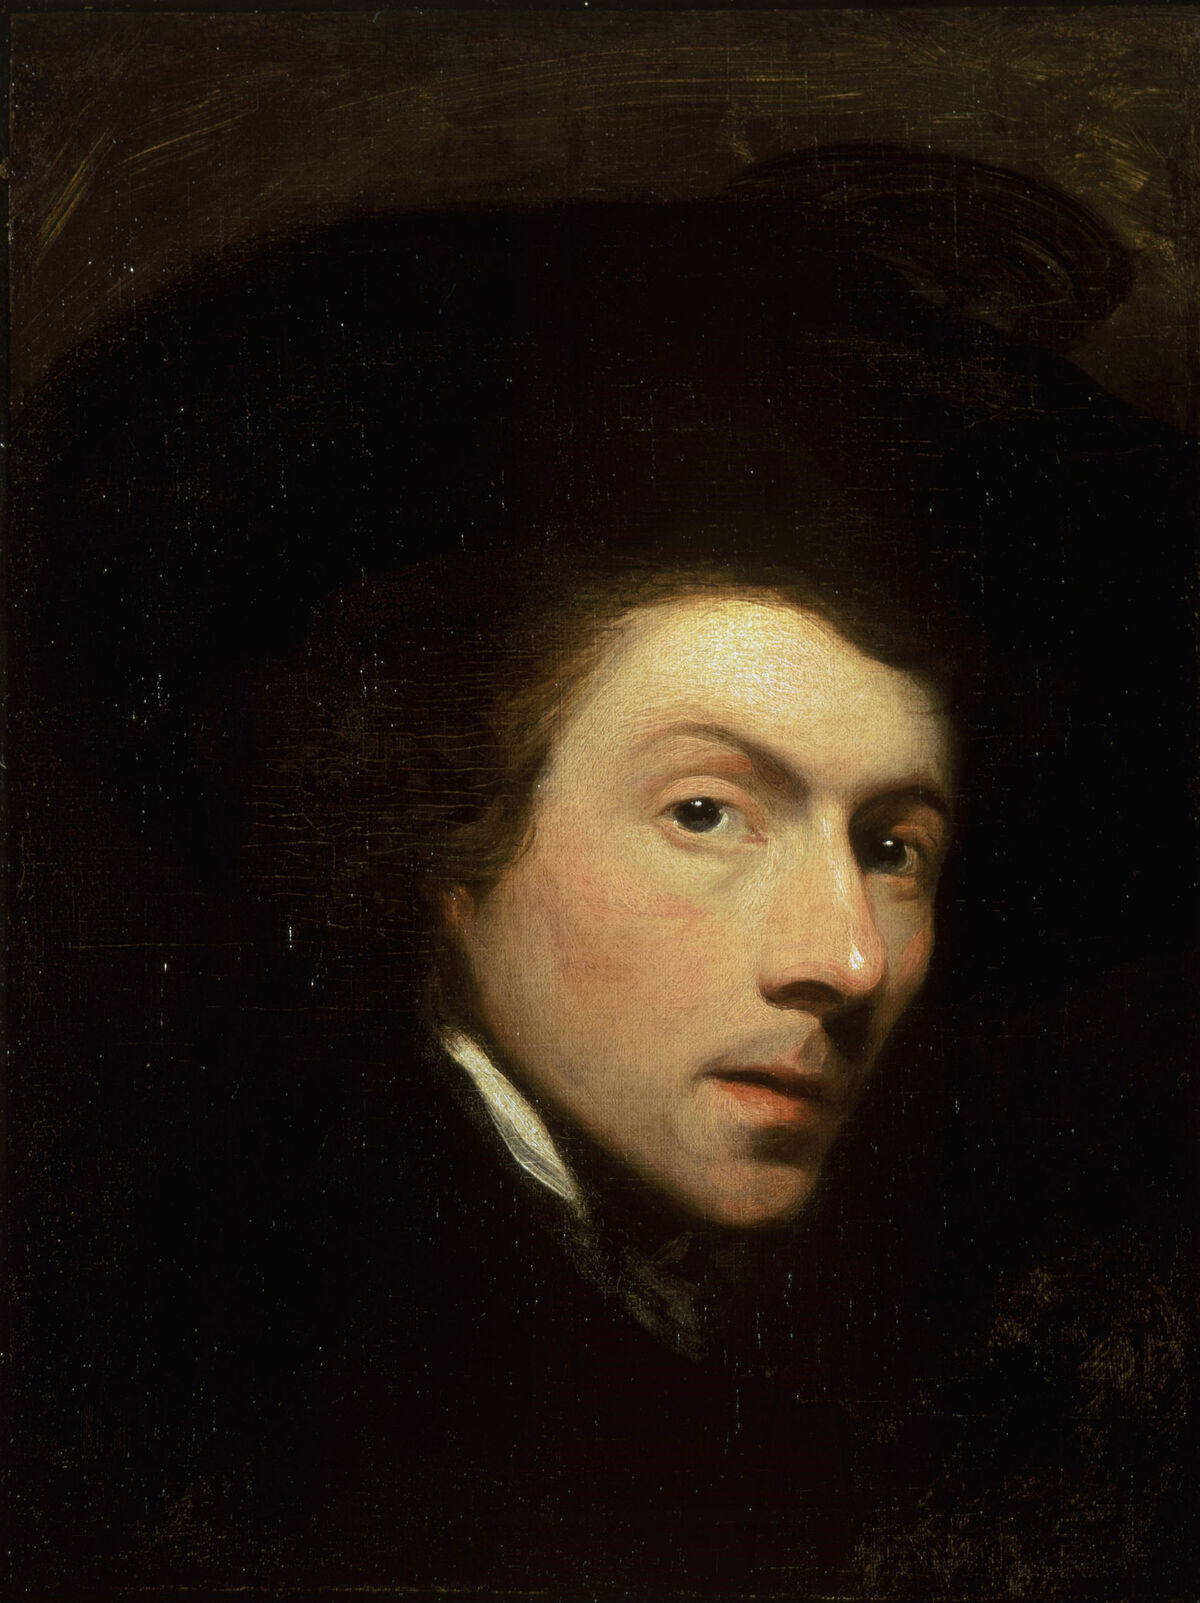 Gilbert Stuart, Self-portrait, 1778. Image via Wikimedia Commons.